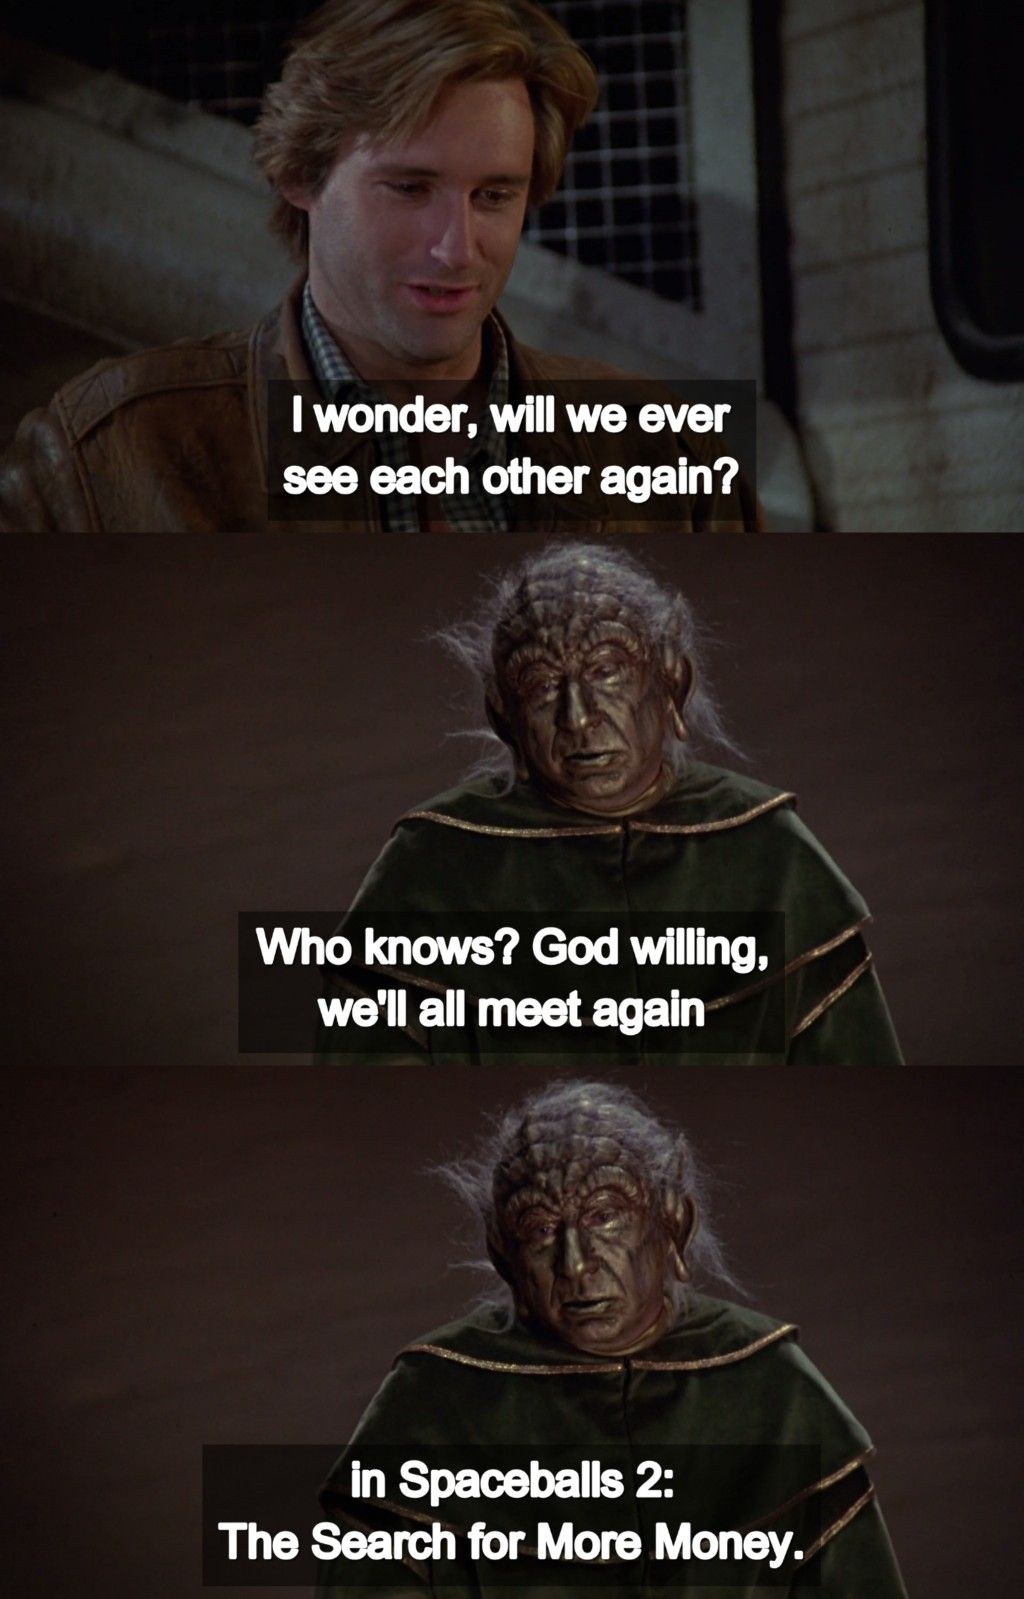 Spaceballs 1987 By Mel Brooks Tv Series Quotes Knowing God Brooks